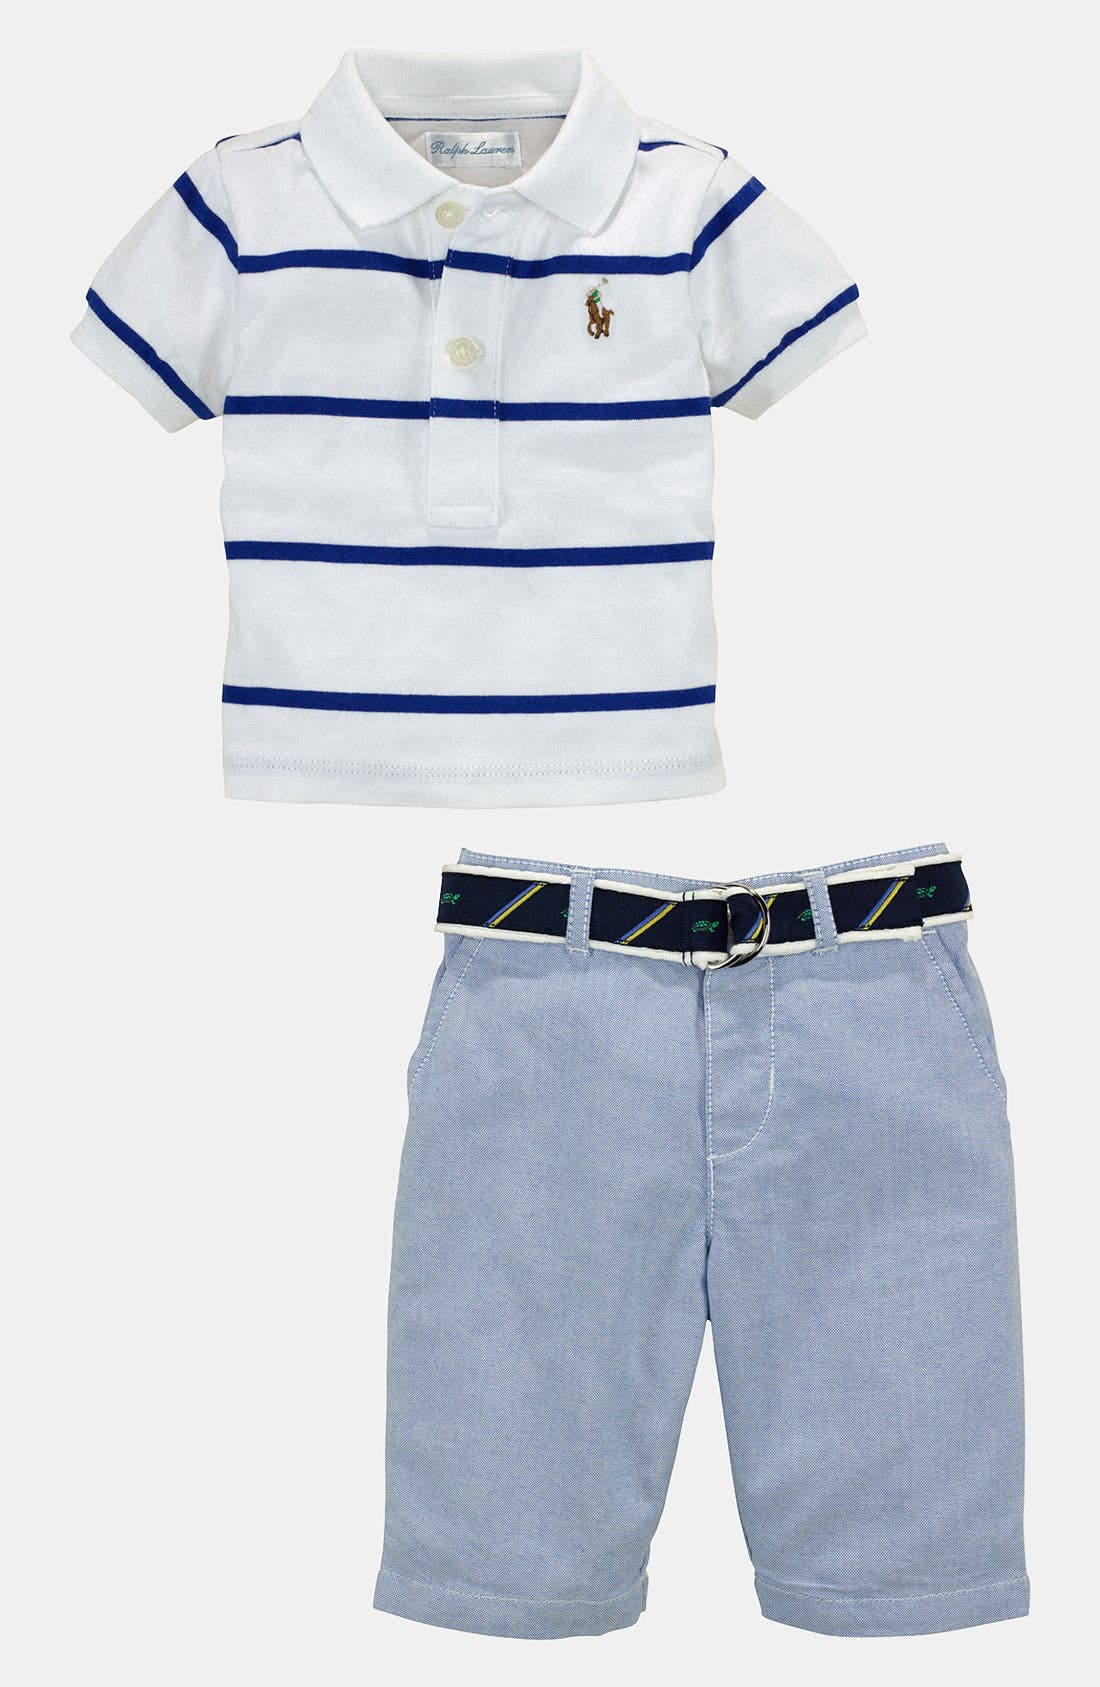 Alternate Image 1 Selected - Ralph Lauren Polo & Pants (Baby)